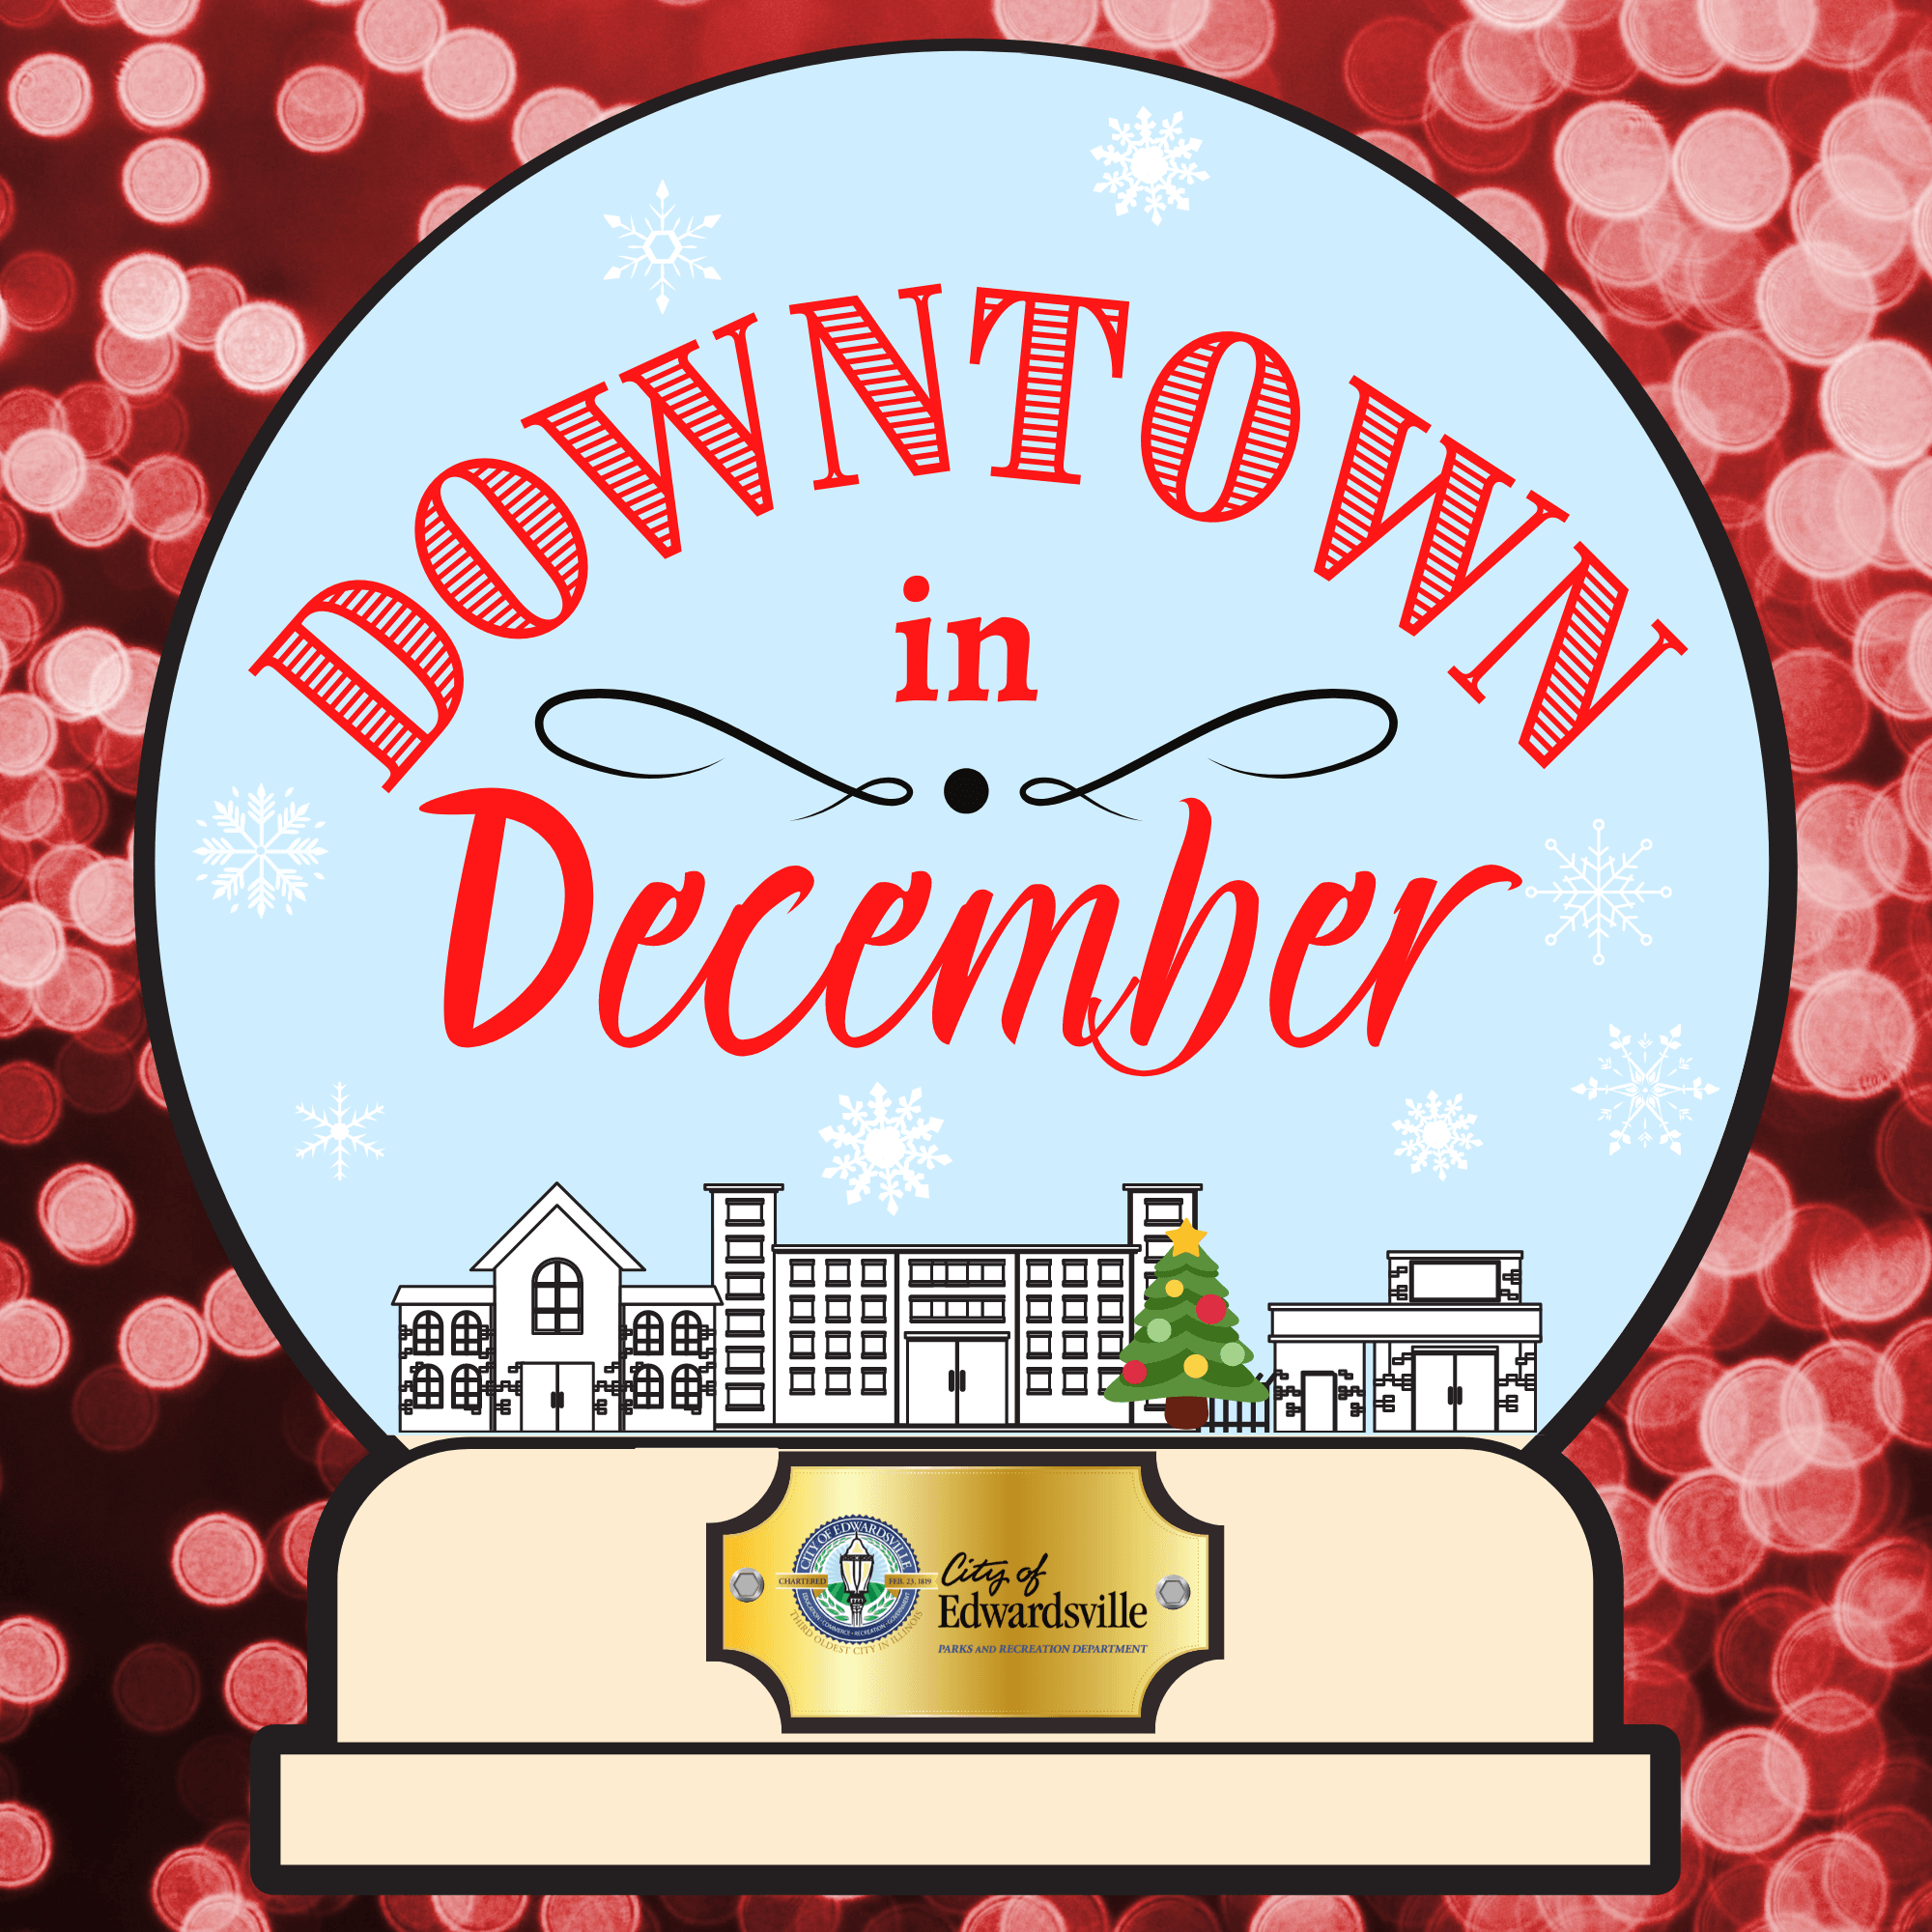 downtown in december logo red background